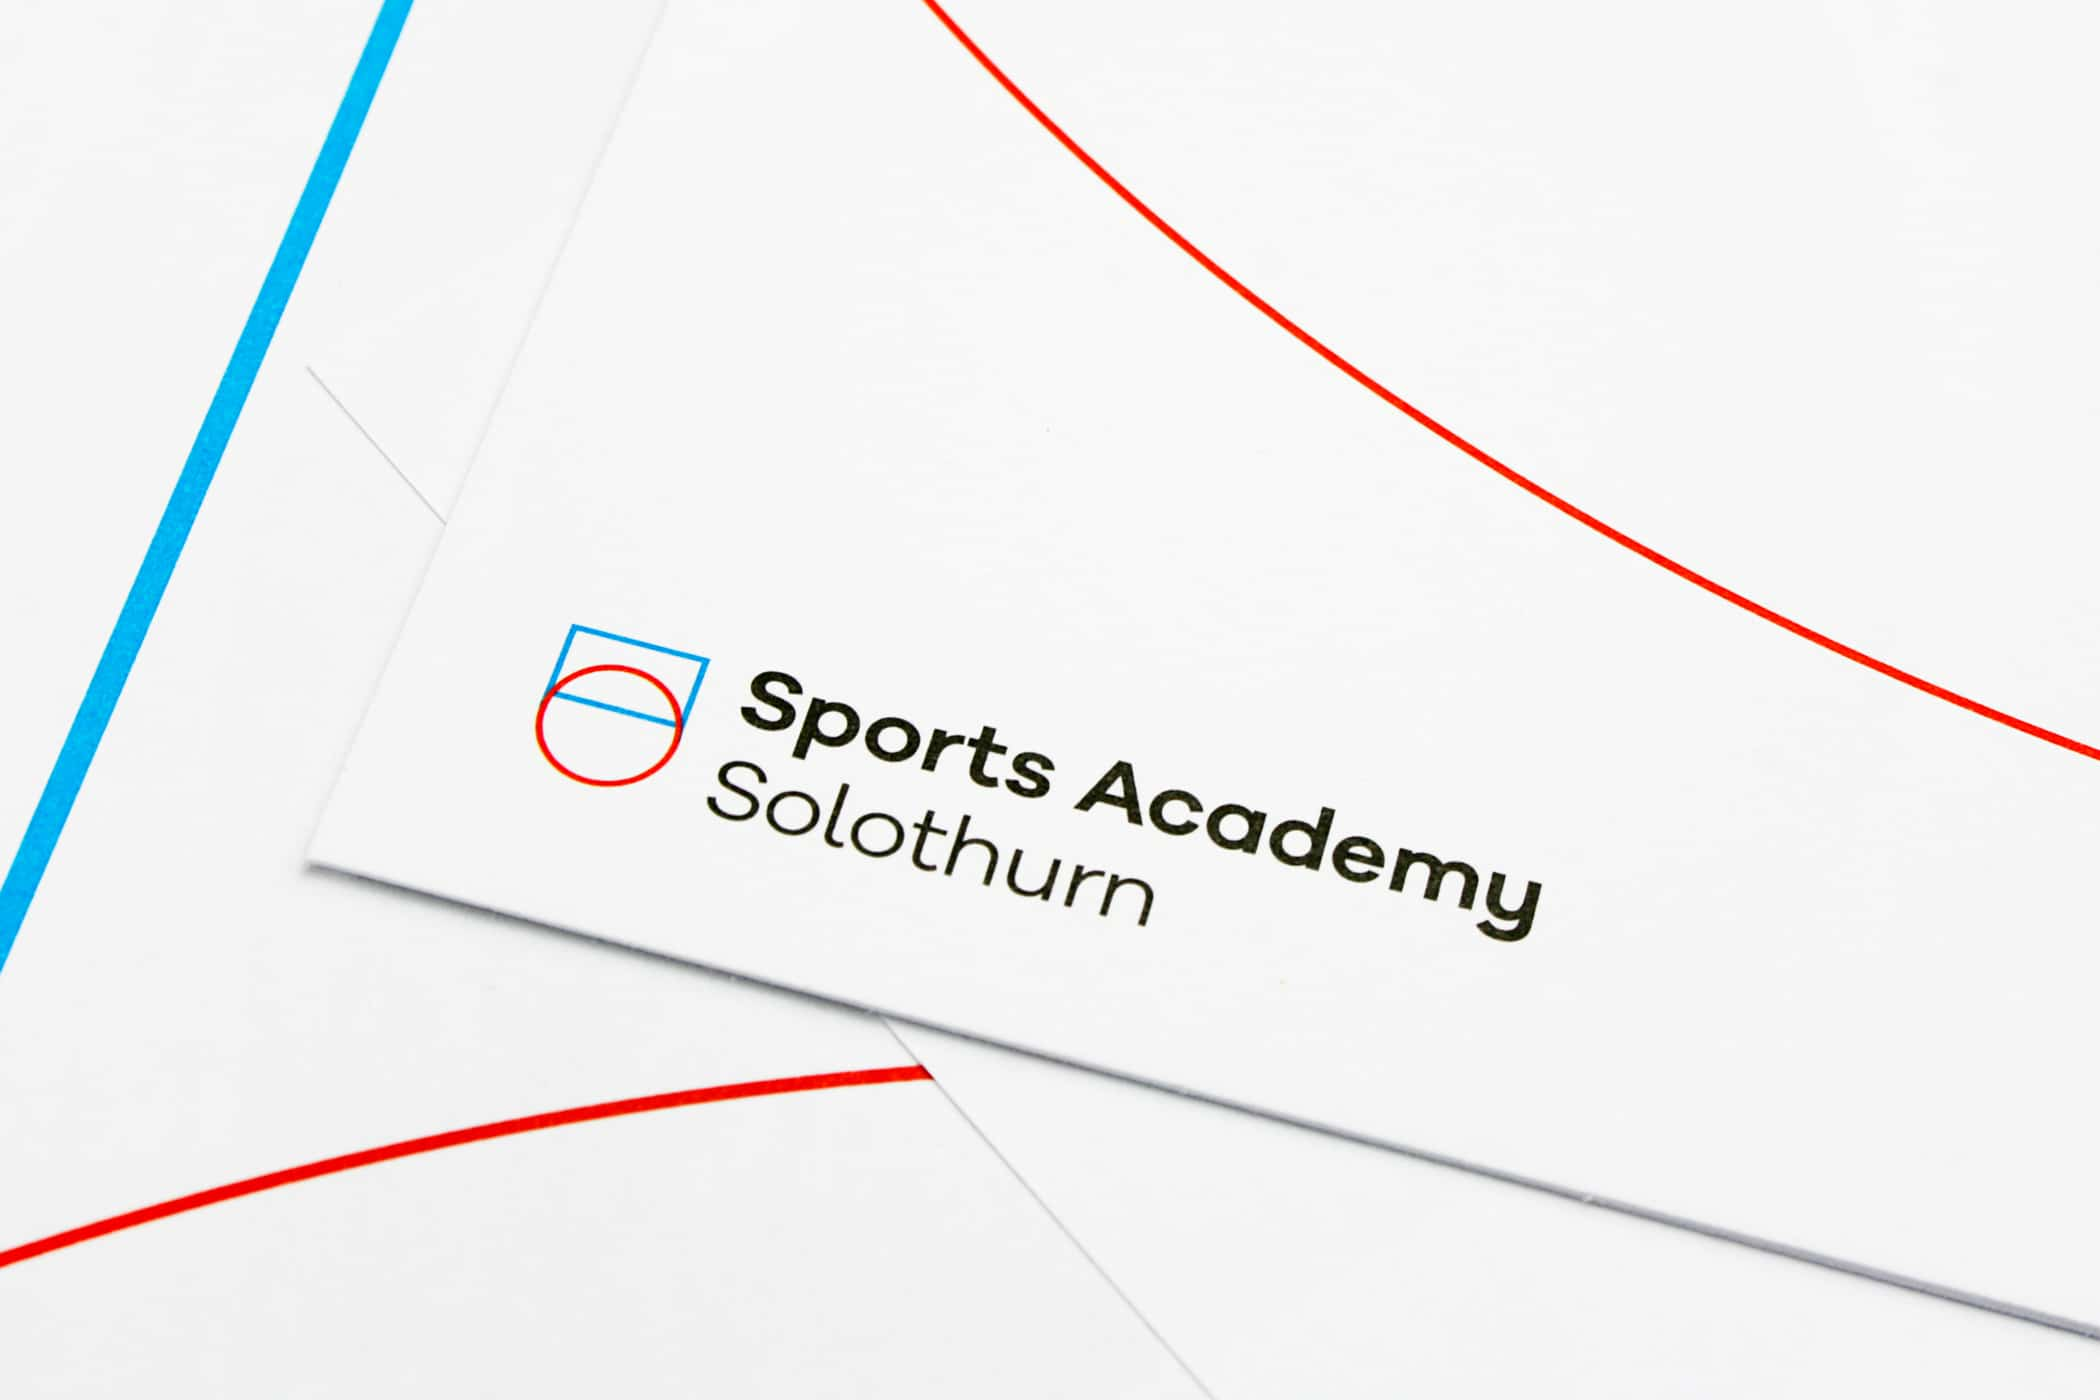 Sports Academy Solothurn Corporate Design